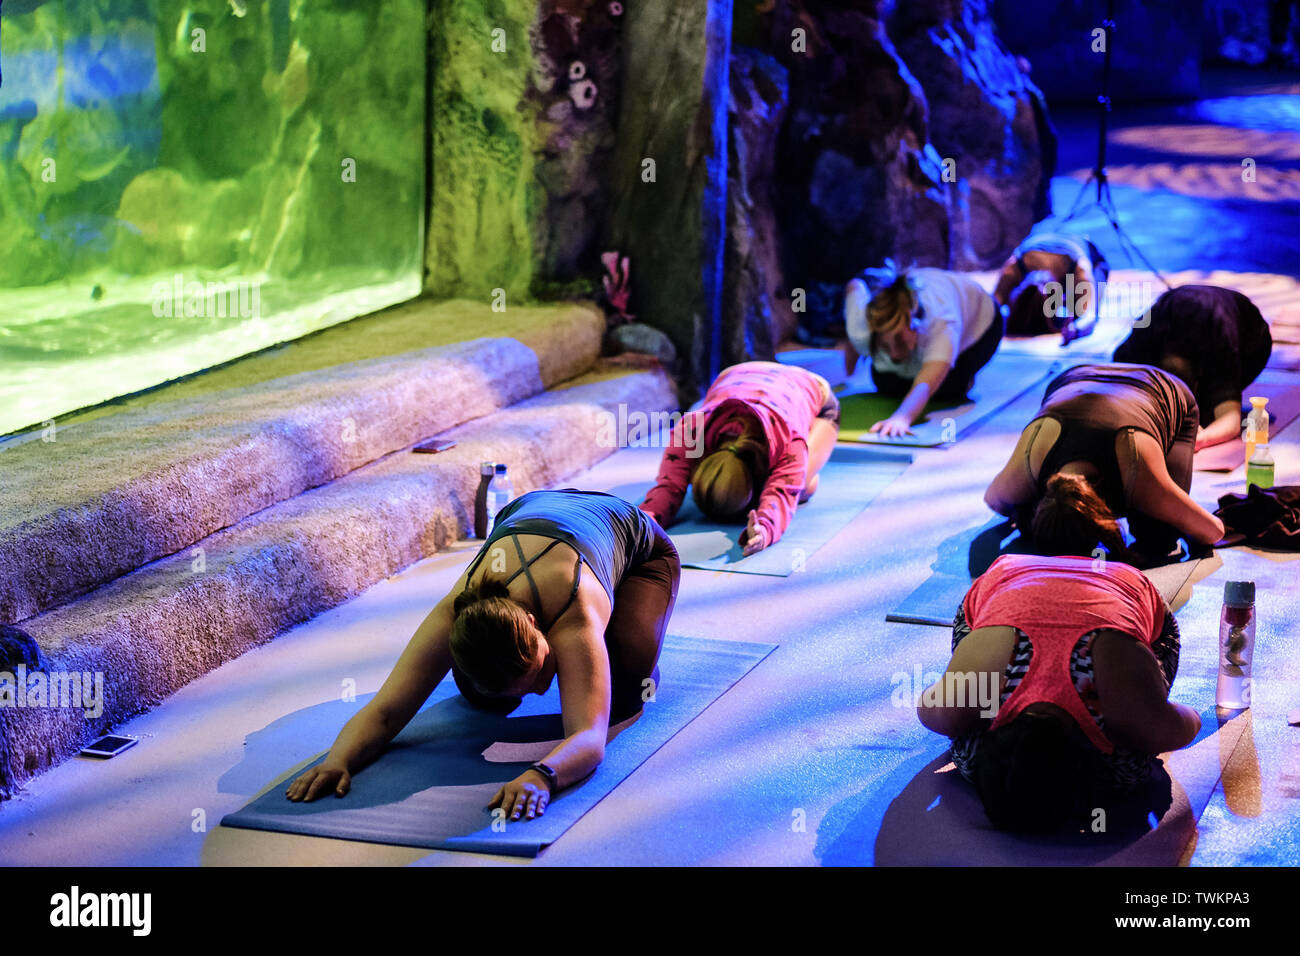 Brighton, Sussex, UK. 21st June, 2019. The Mayor of the City of Brighton & Hove Councillor Alex Phillips joins in a special yoga at the aquarium class on Friday 21 June 2019 at Brighton SEA LIFE, Brighton. Picture by Julie Edwards/Female Perspective. Credit: Female Perspective Ltd/Alamy Live News Stock Photo